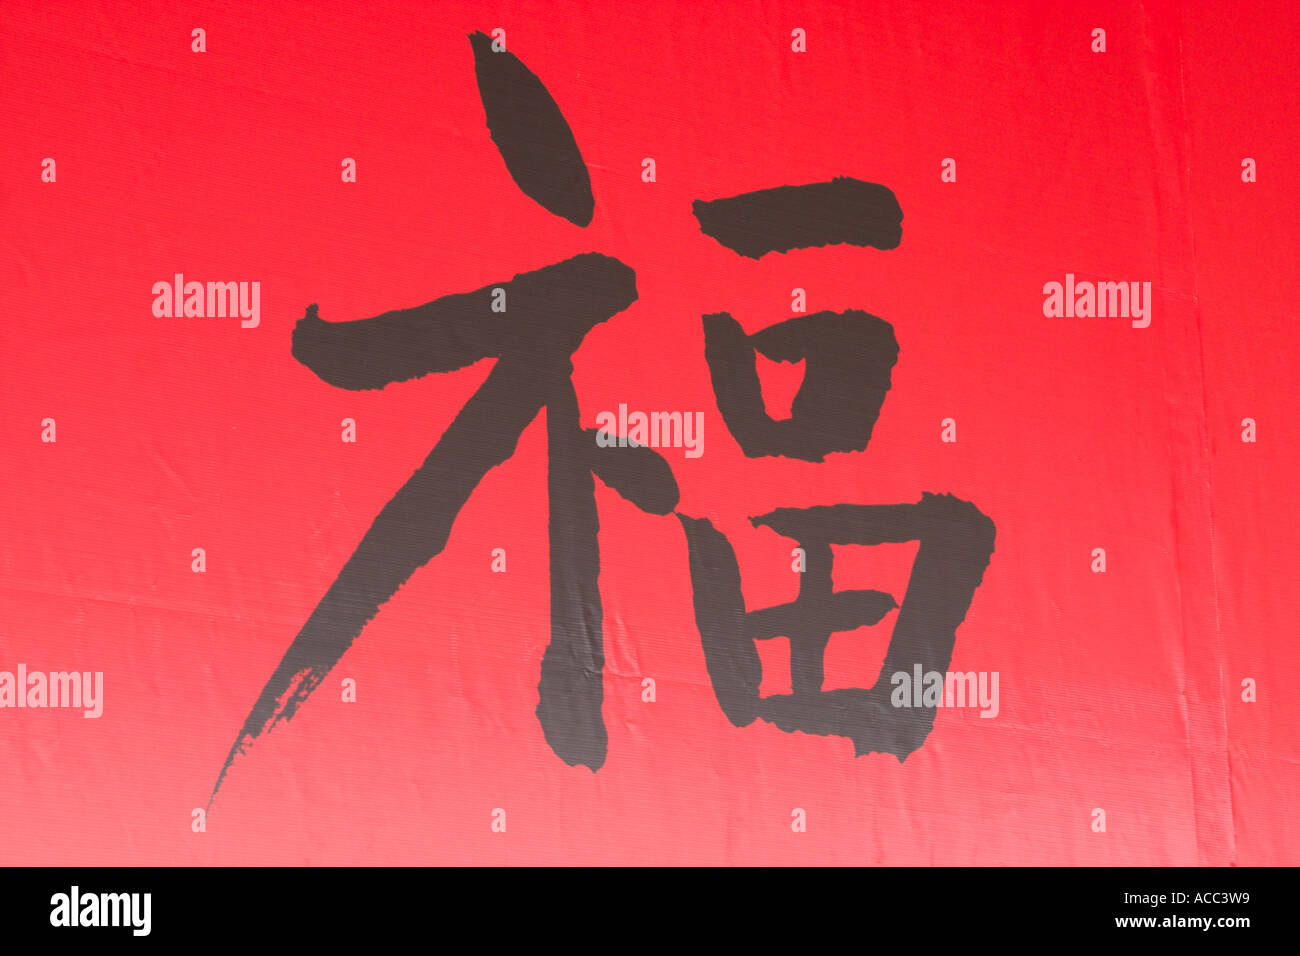 Chinese Character Meaning Good Fortune Stock Photos Chinese